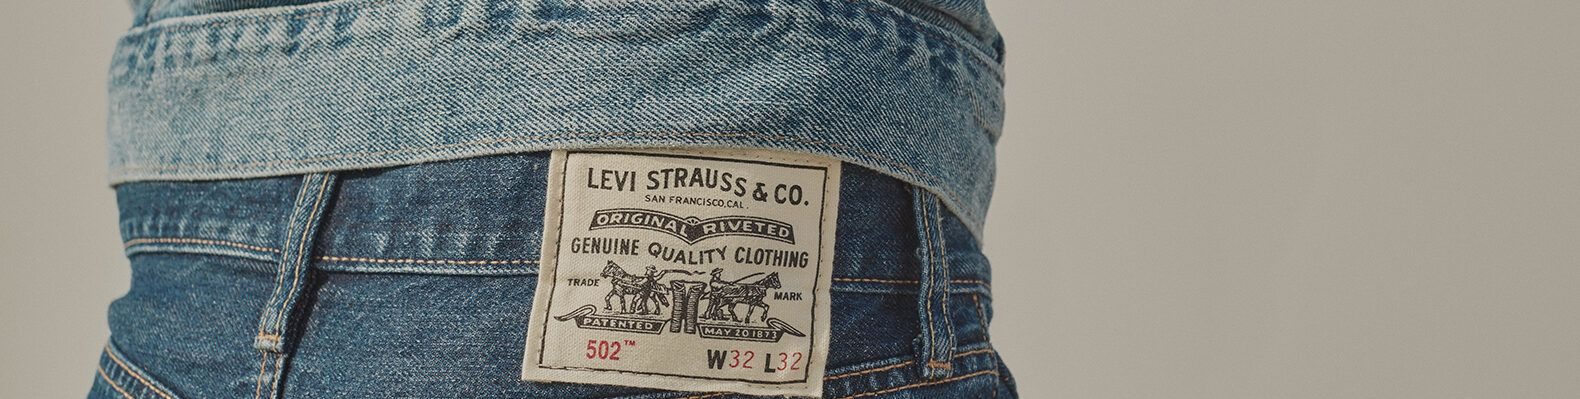 close-up of Levi Strauss & Co. label on the back of a pair of jeans